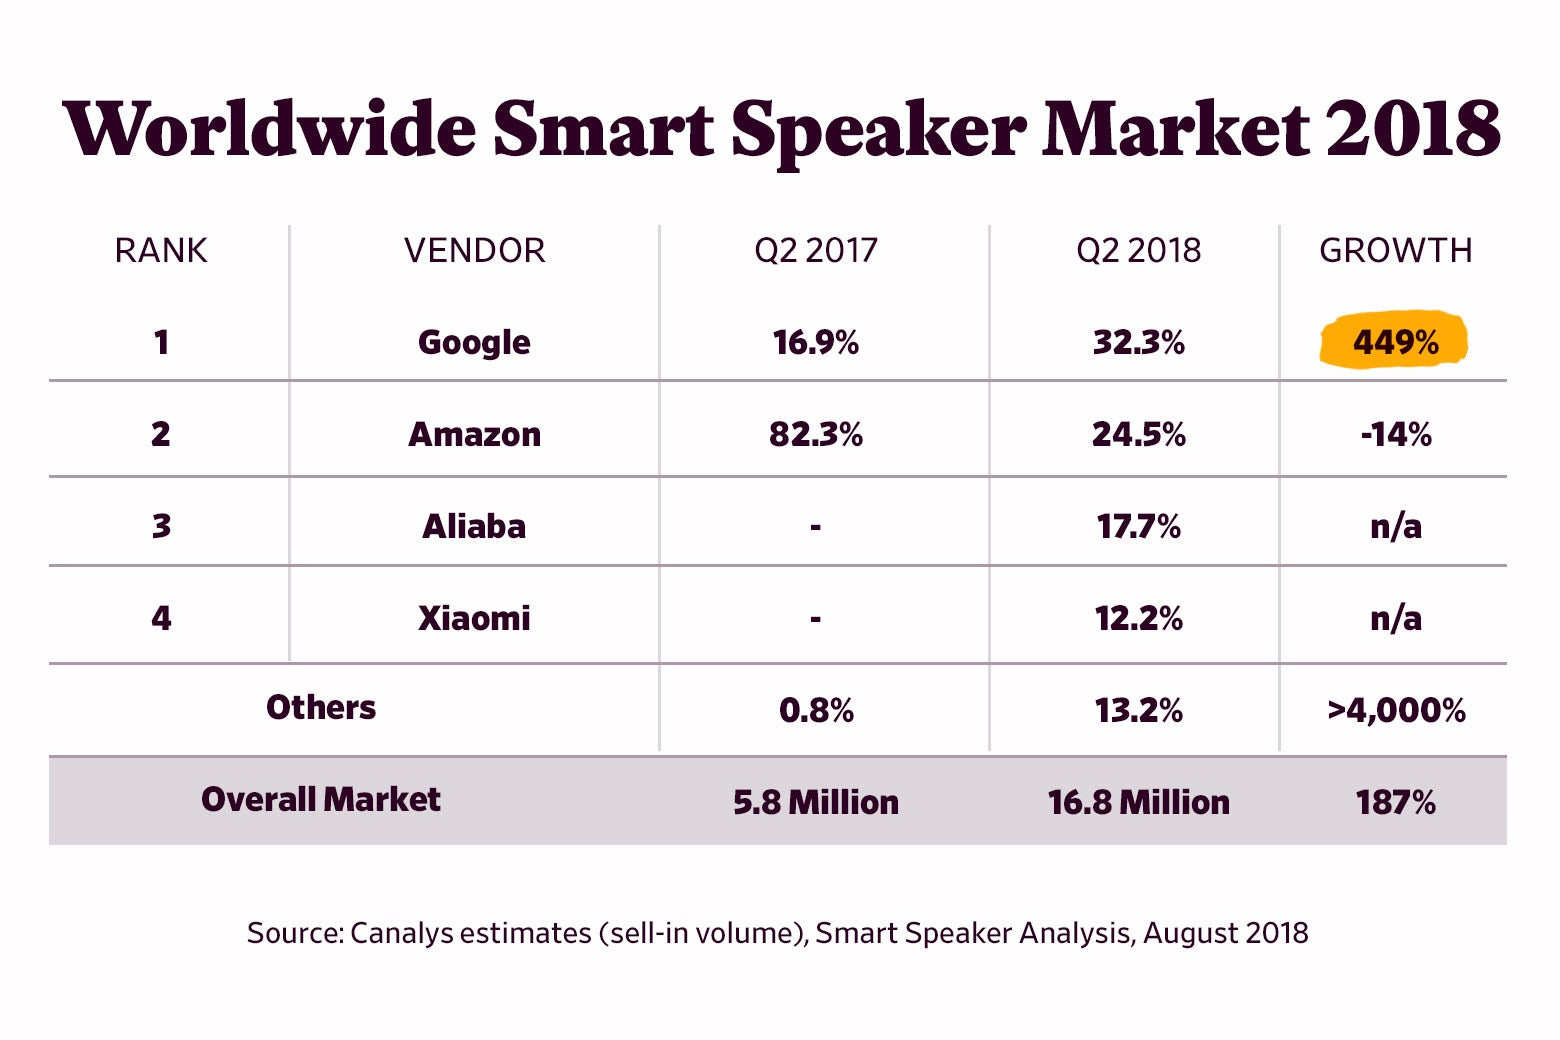 Chart showing worldwide smart speaker market by Q2 2018.